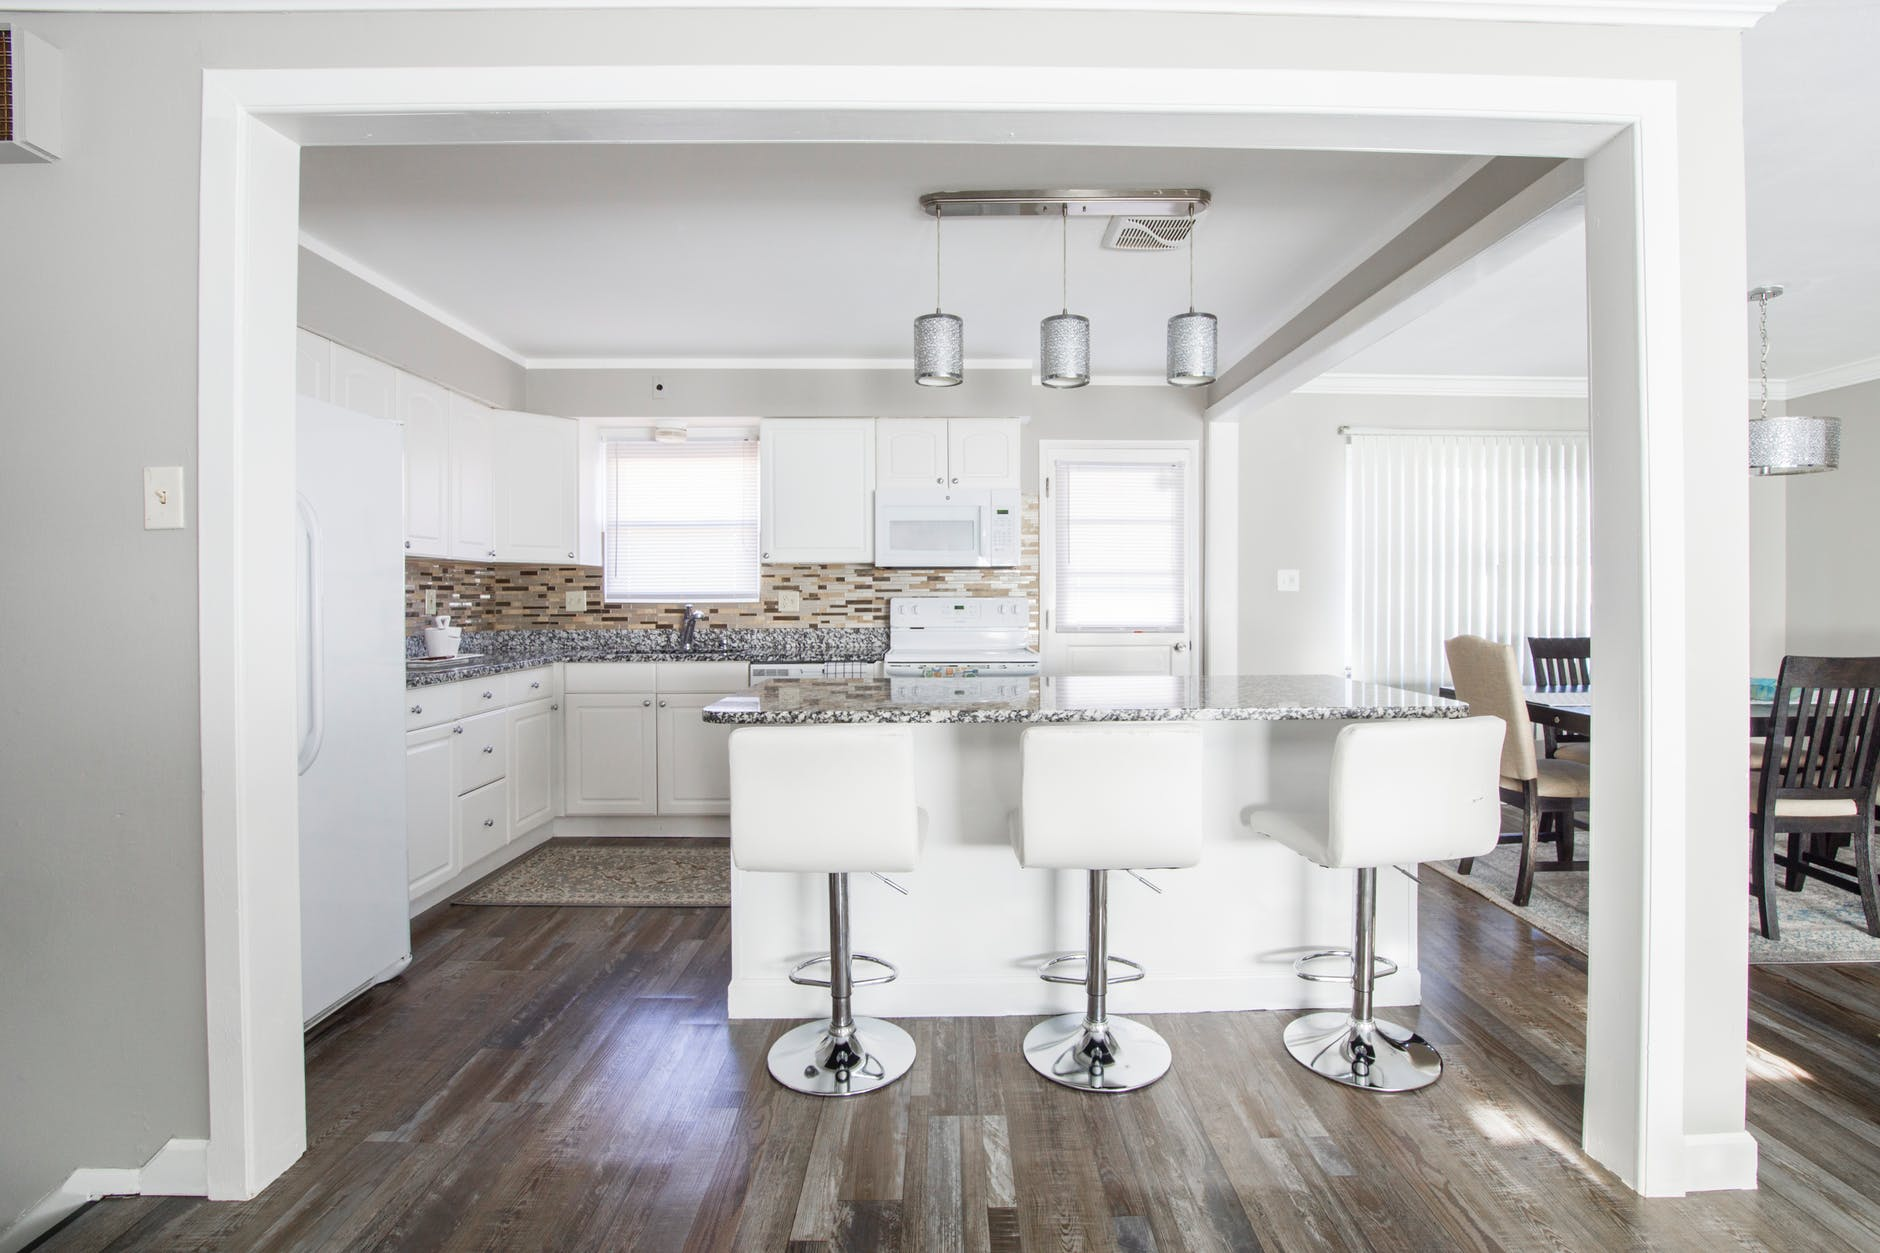 How To Clean Hardwood Floors Without Damaging Them